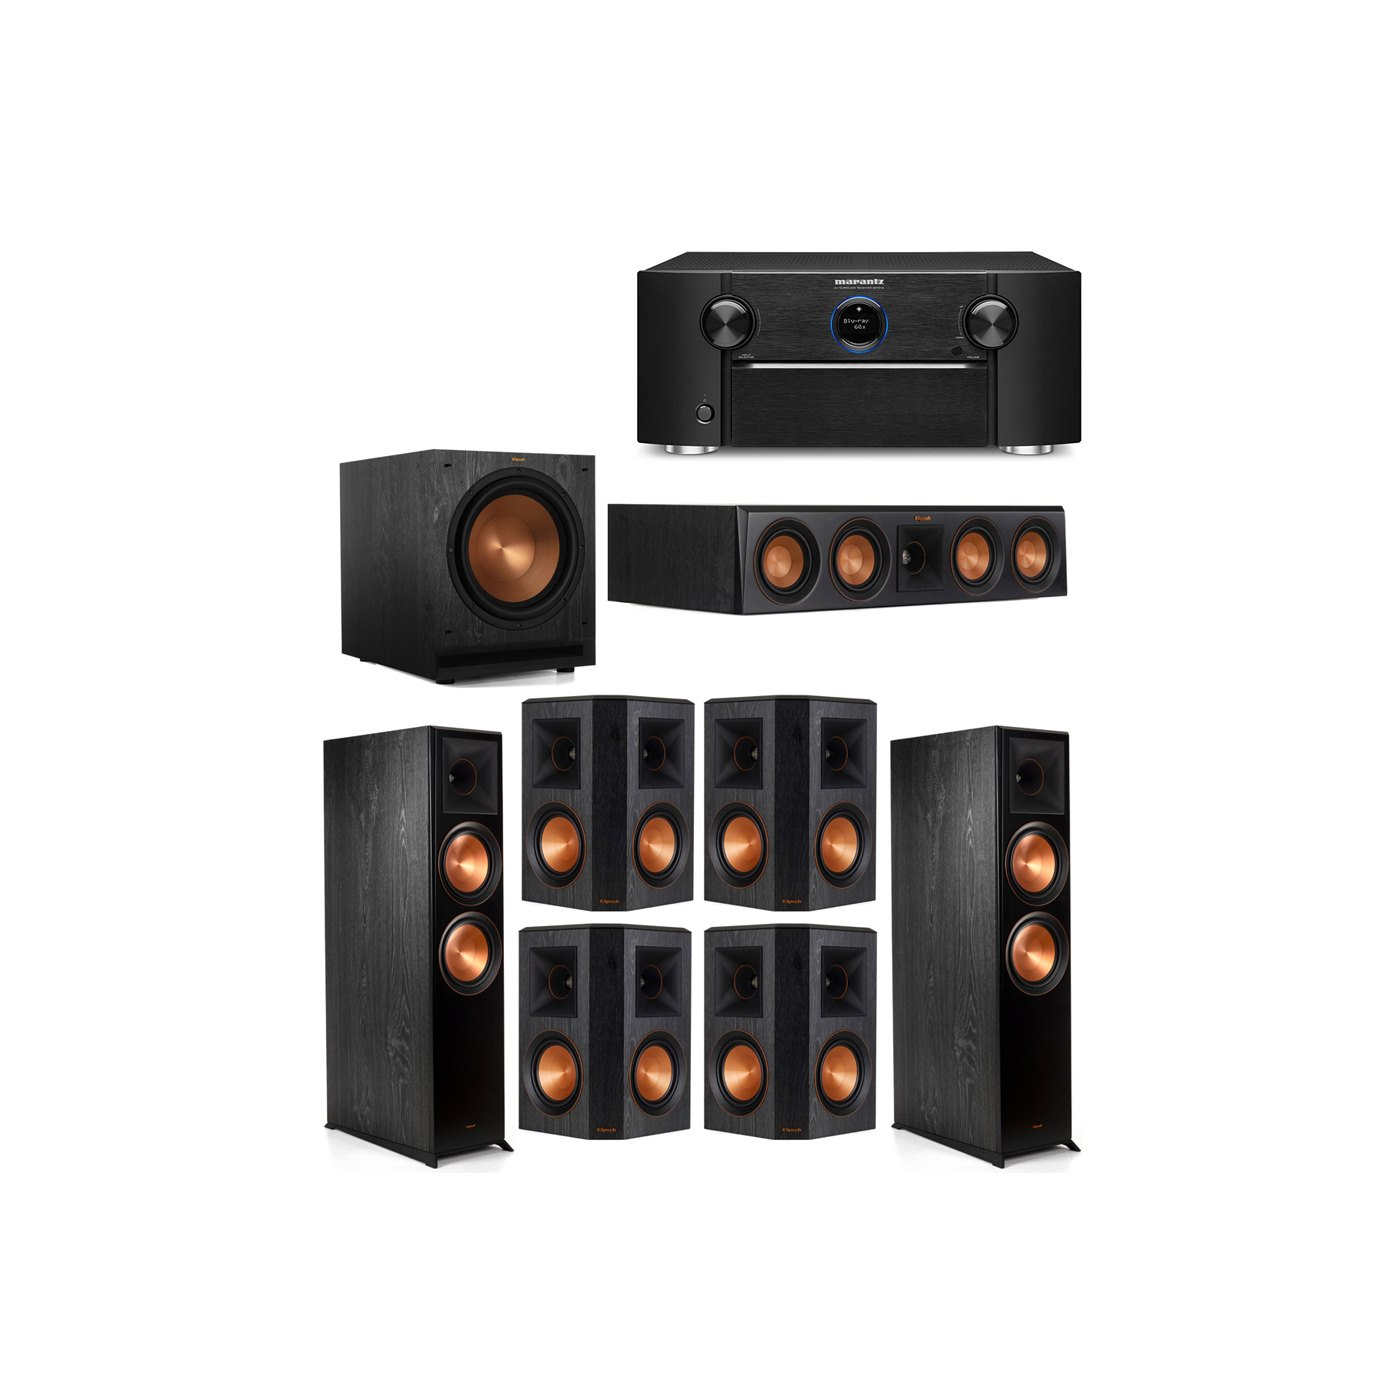 Klipsch 7.1 System with 2 RP-8000F Floorstanding Speakers, 1 Klipsch RP-404C Center Speaker, 4 Klipsch RP-502S Surround Speakers, 1 Klipsch SPL-120 Subwoofer, 1 Marantz SR7012 A/V Receiver